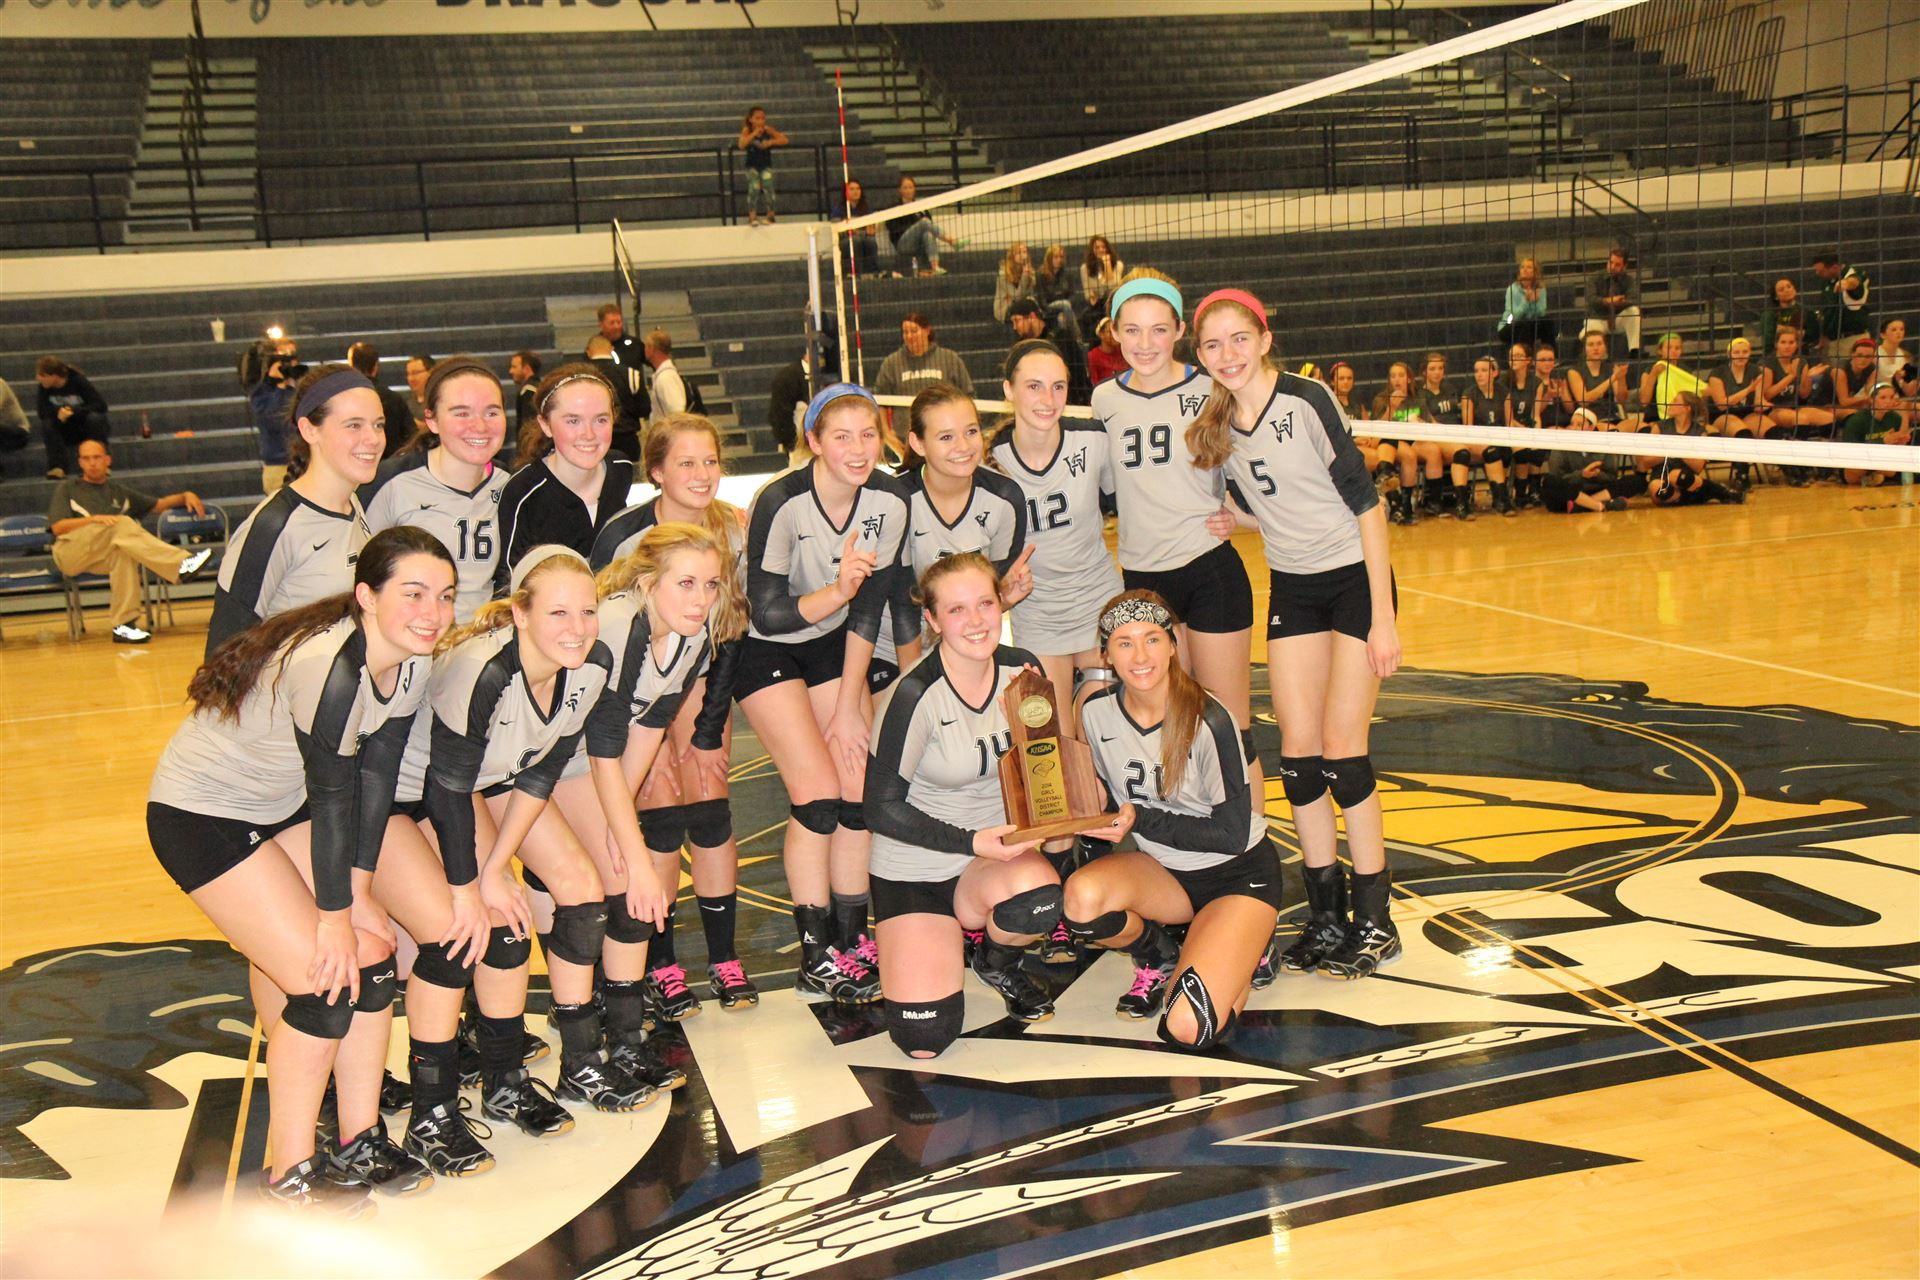 14th District Volleyball Tournament championship